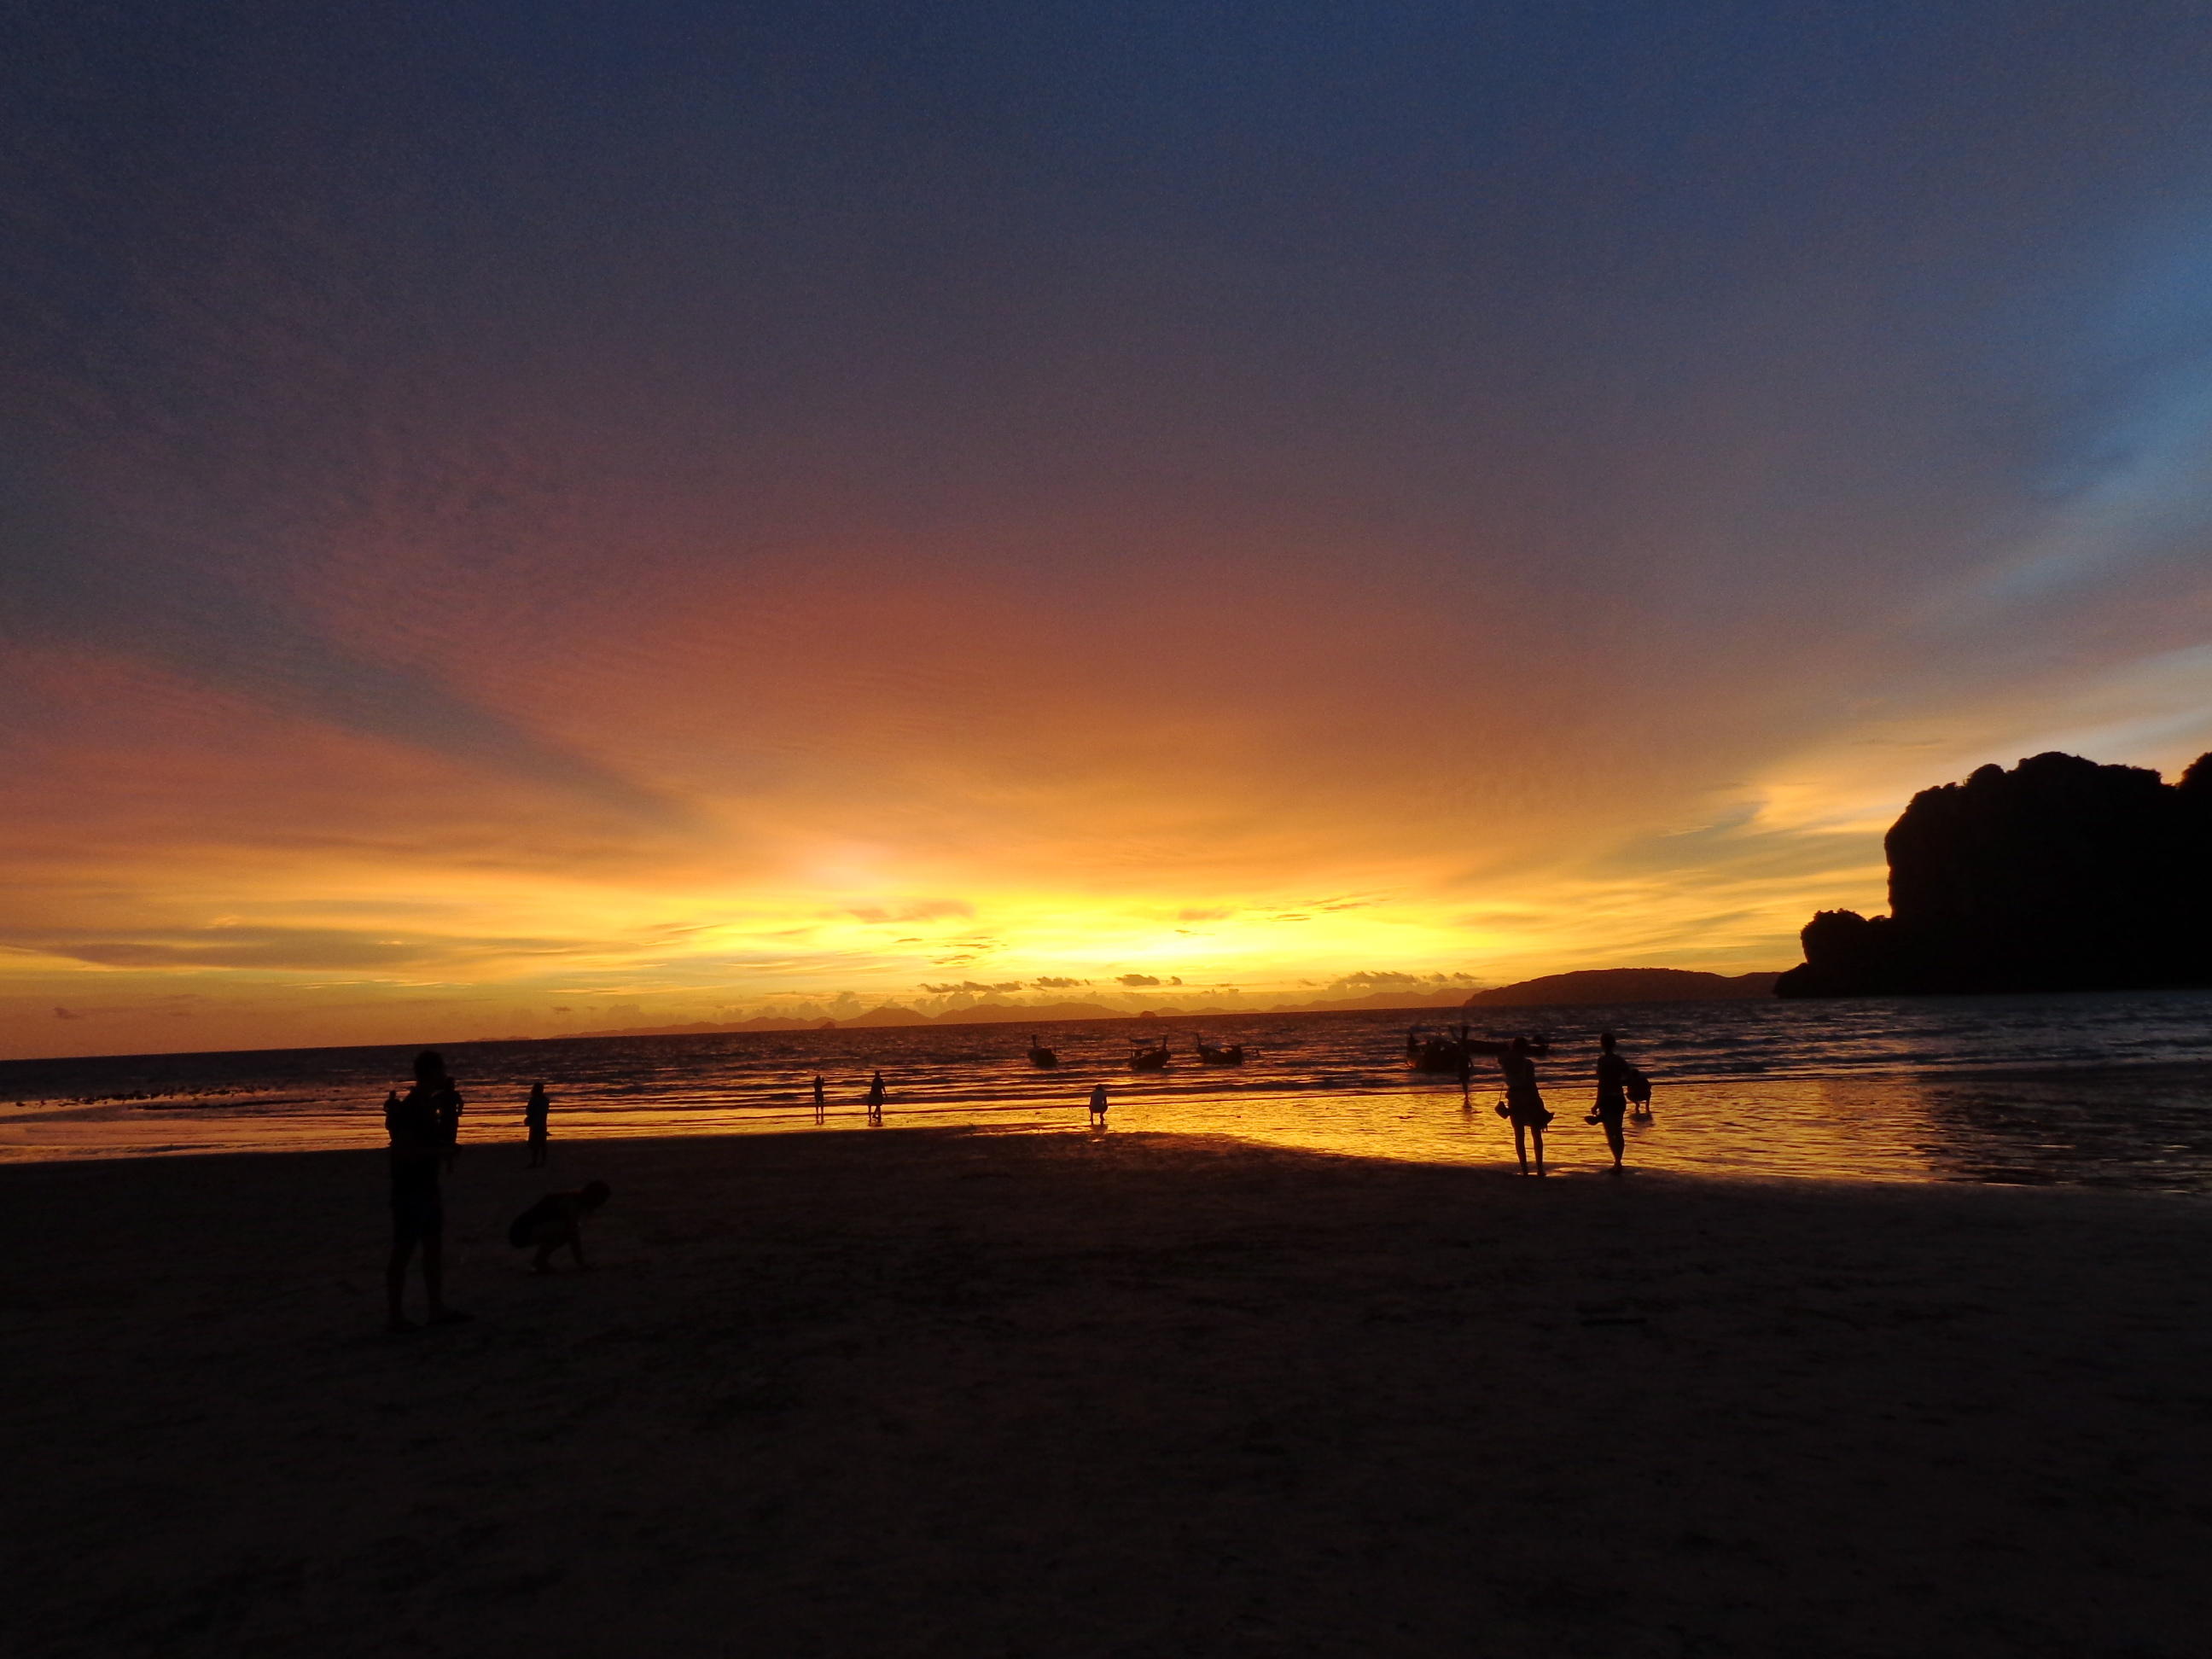 Sunset in Railay, Thailand